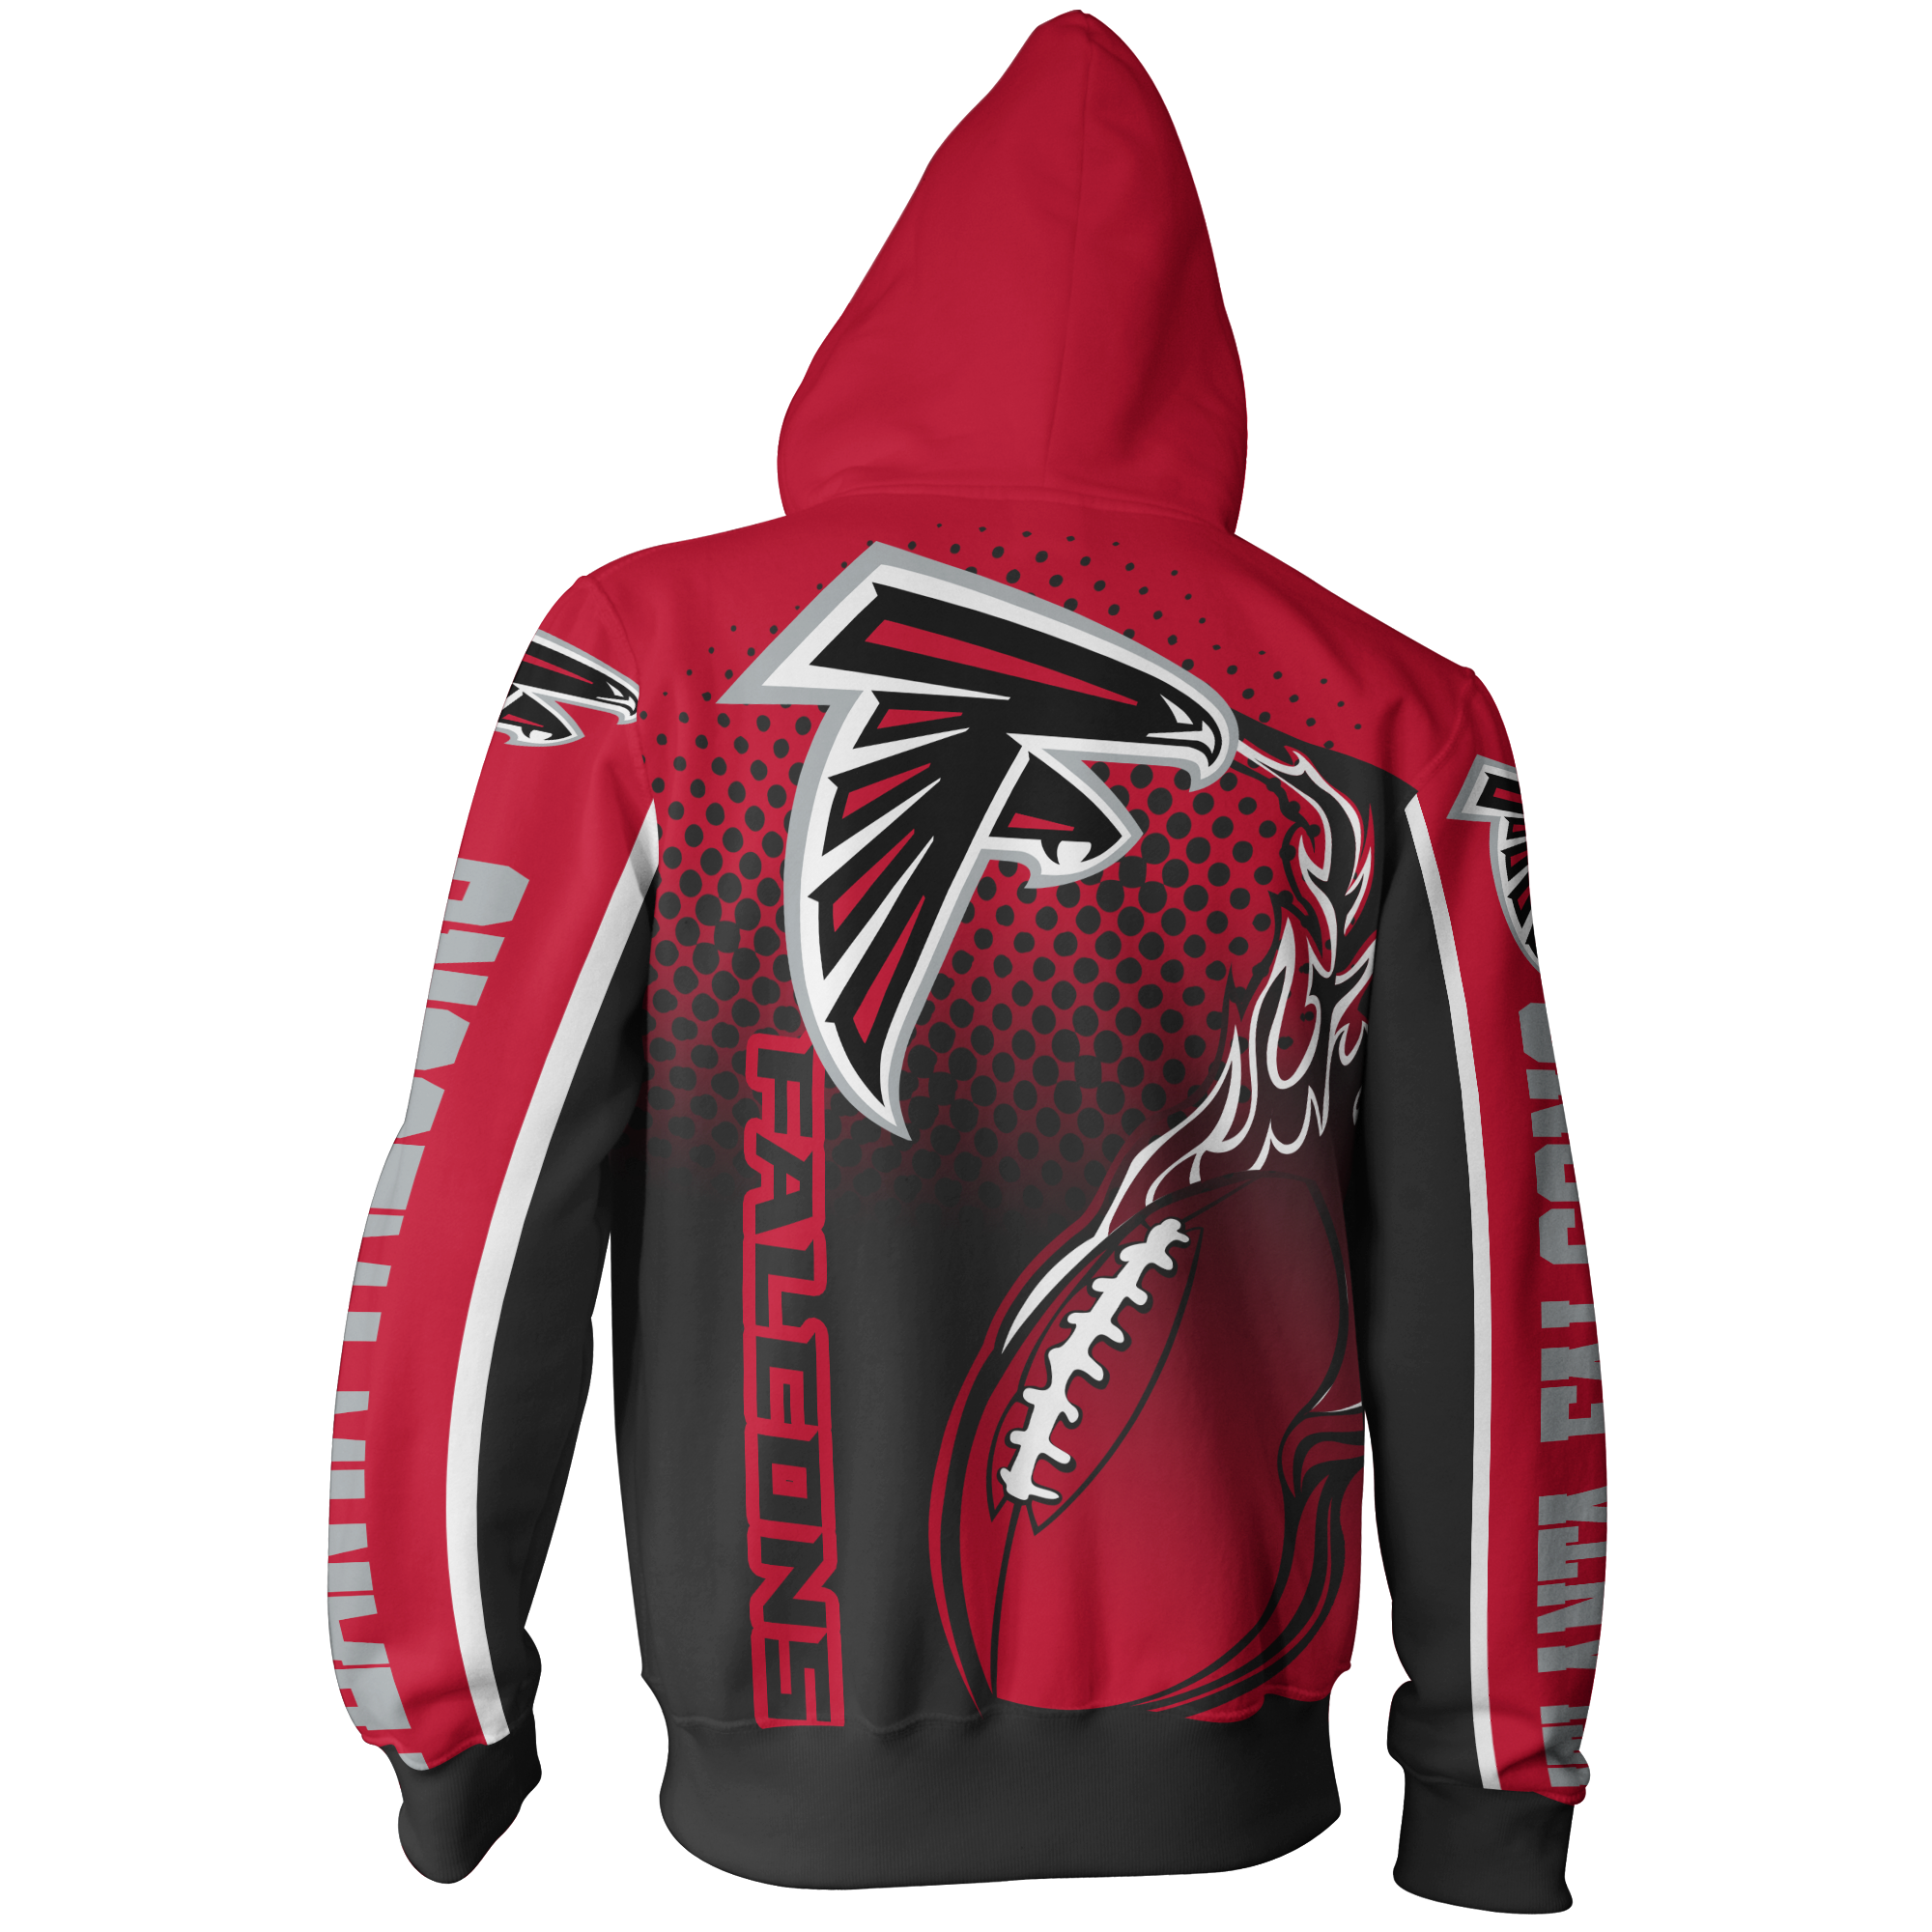 Men Women Atlanta Falcons 3d Zipper Hoodie Atlanta Falcons Zipper Hoodie Nfl Atlanta Falc Atlanta Falcons Clothes Atlanta Falcons Atlanta Falcons Gear